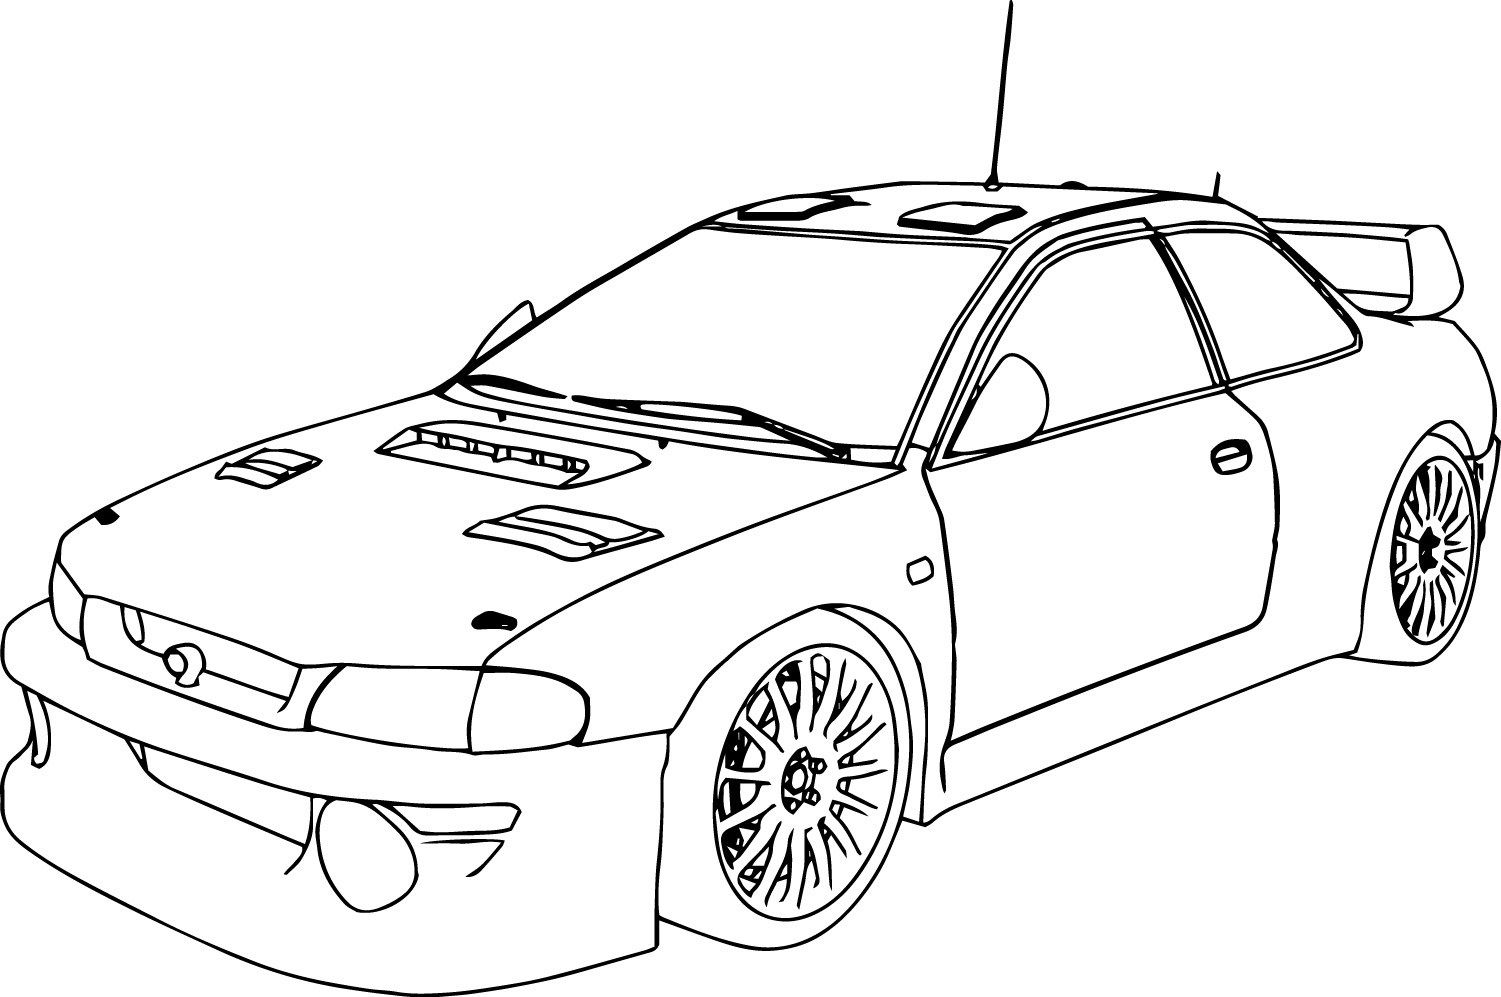 car picture to color free printable sports coloring pages for kids color car picture to